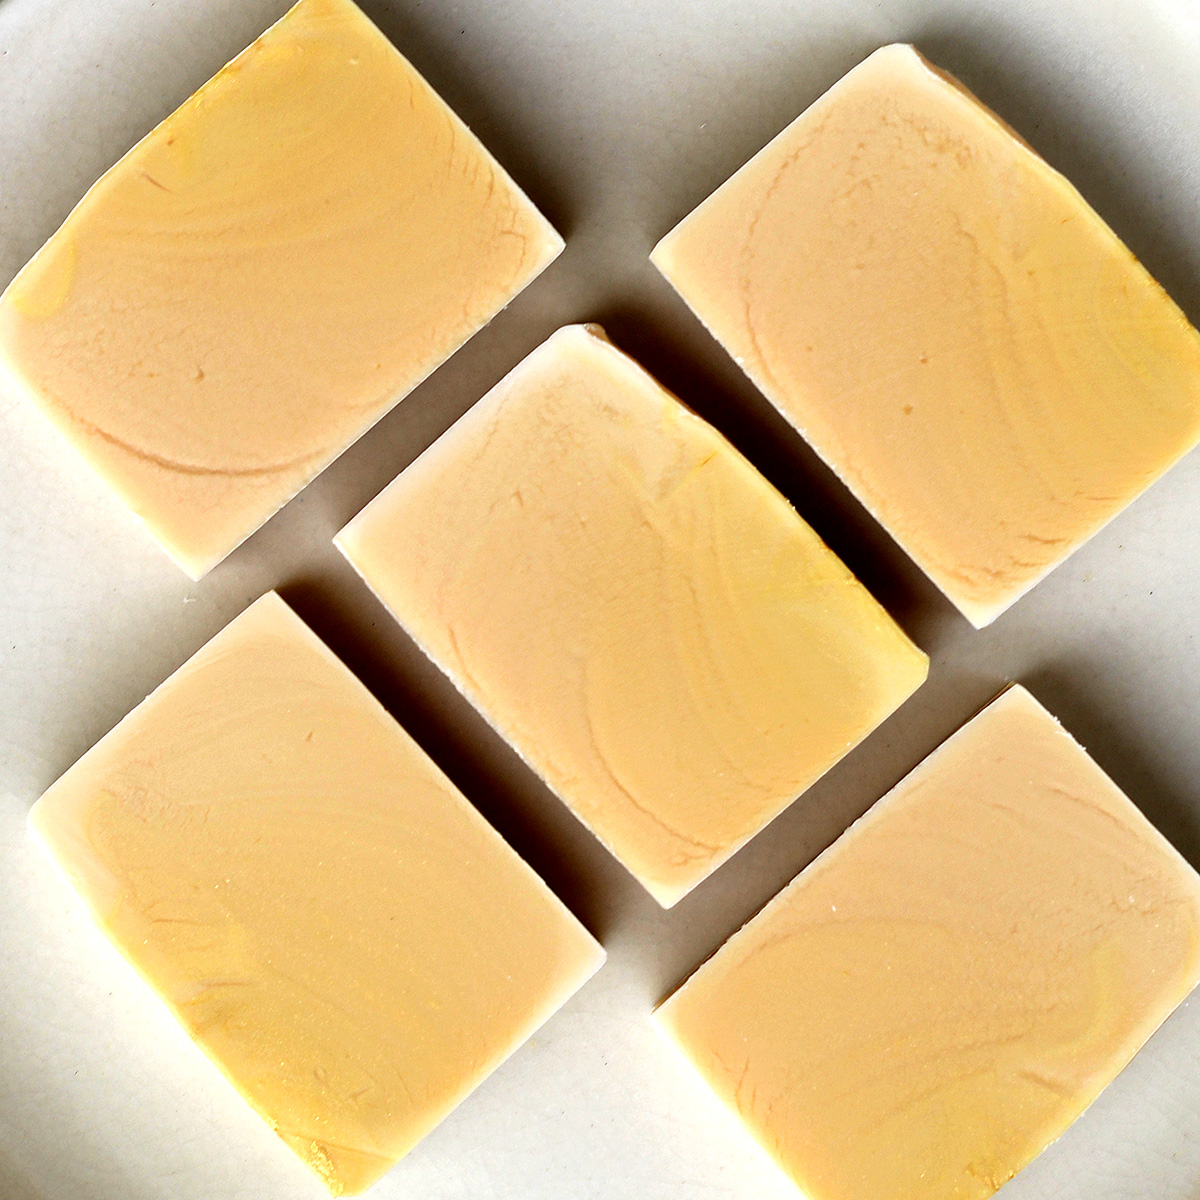 Gold ombre style soap. Lemon Myrtle scented